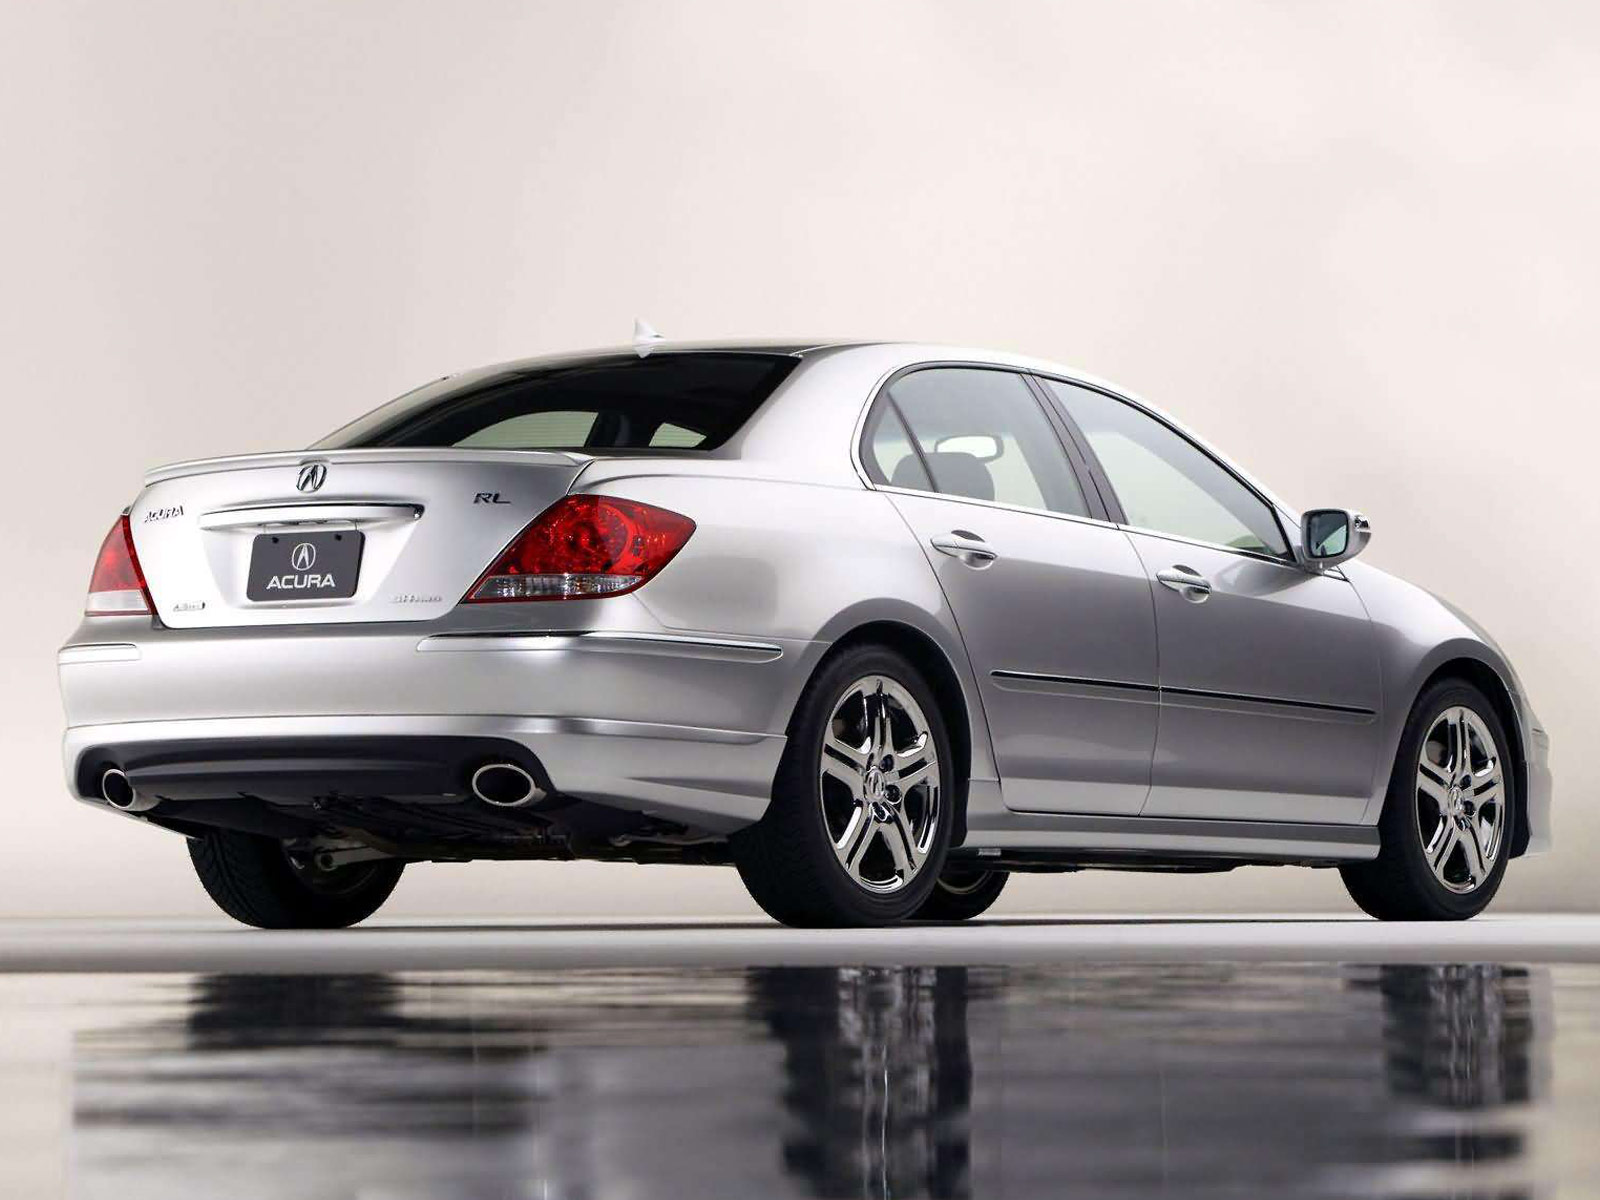 2005 Acura RL with ASPEC Performance Package photo - 4